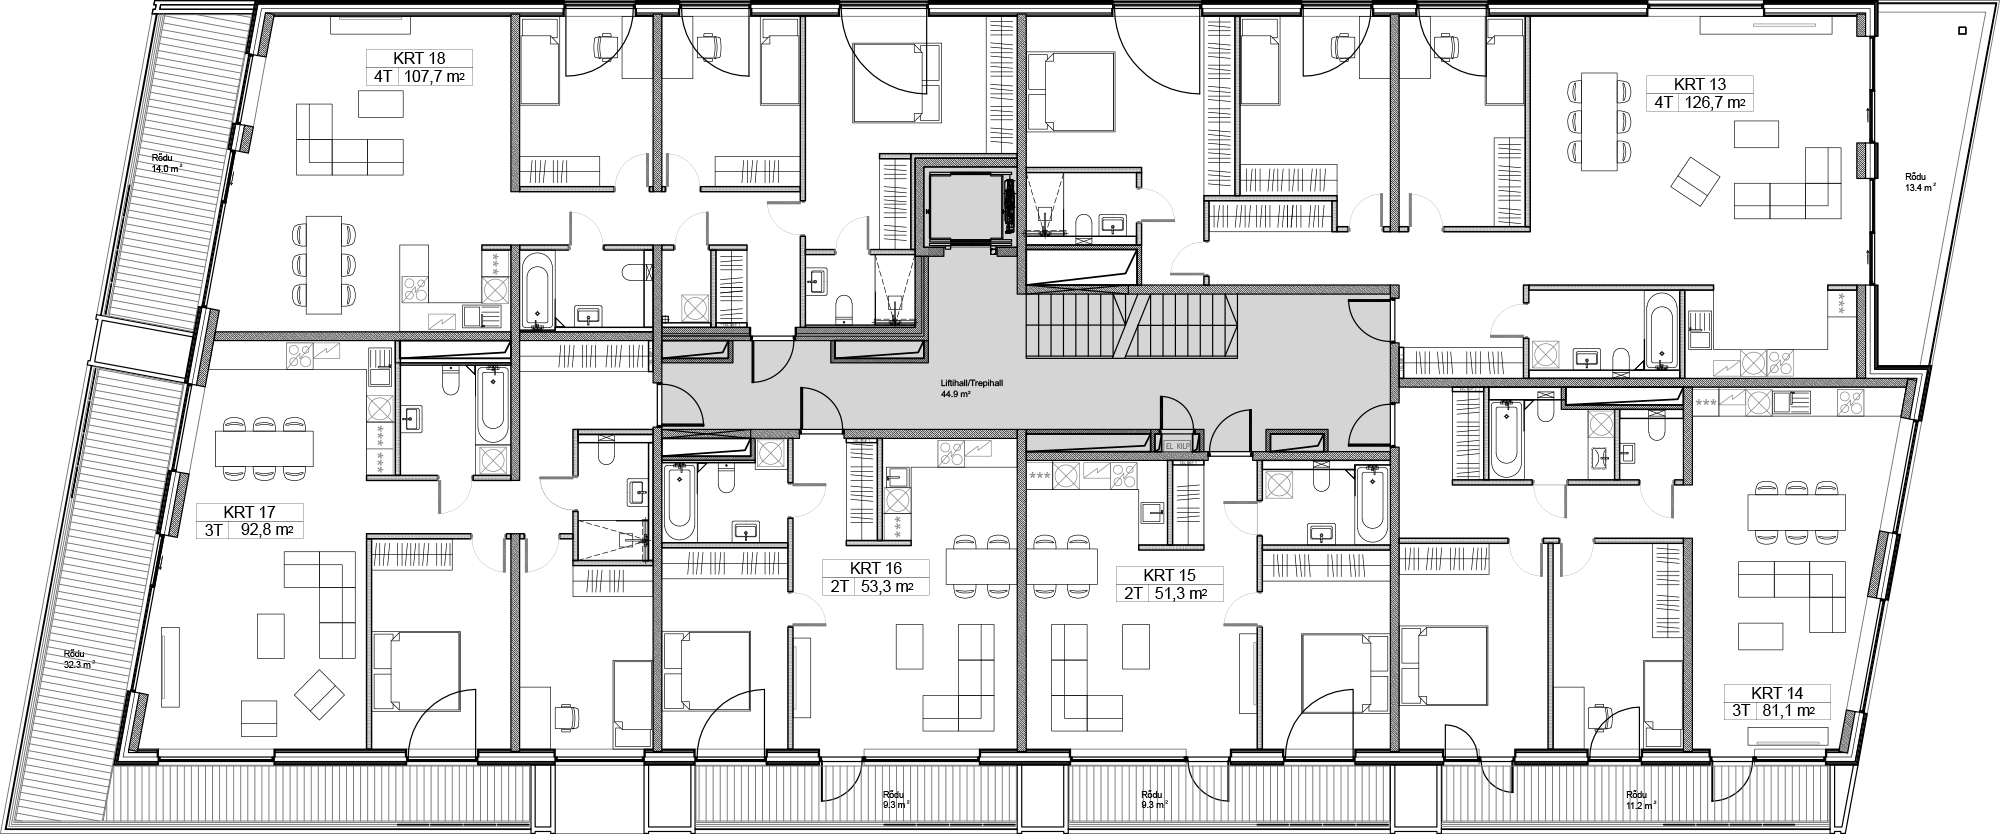 Floor 4 plan of Kiikri Apartment House A